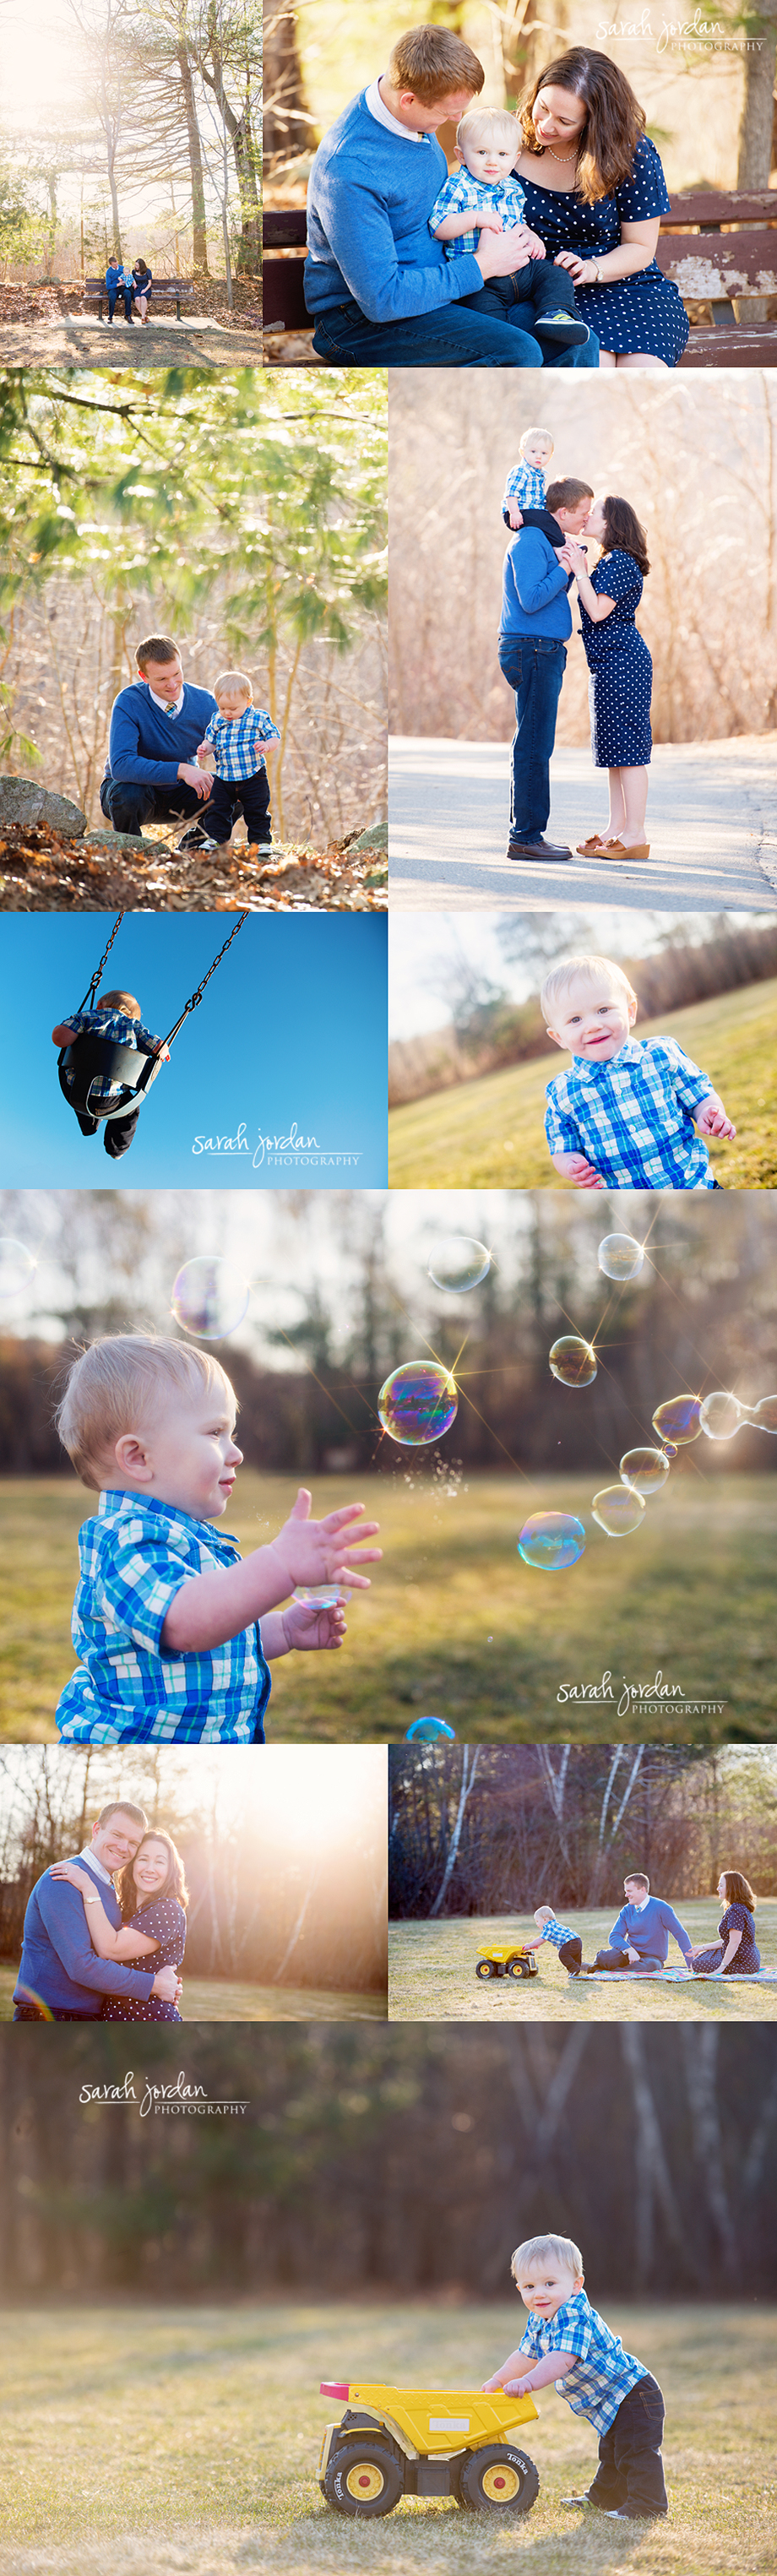 Tewksbury MA Family Photographer